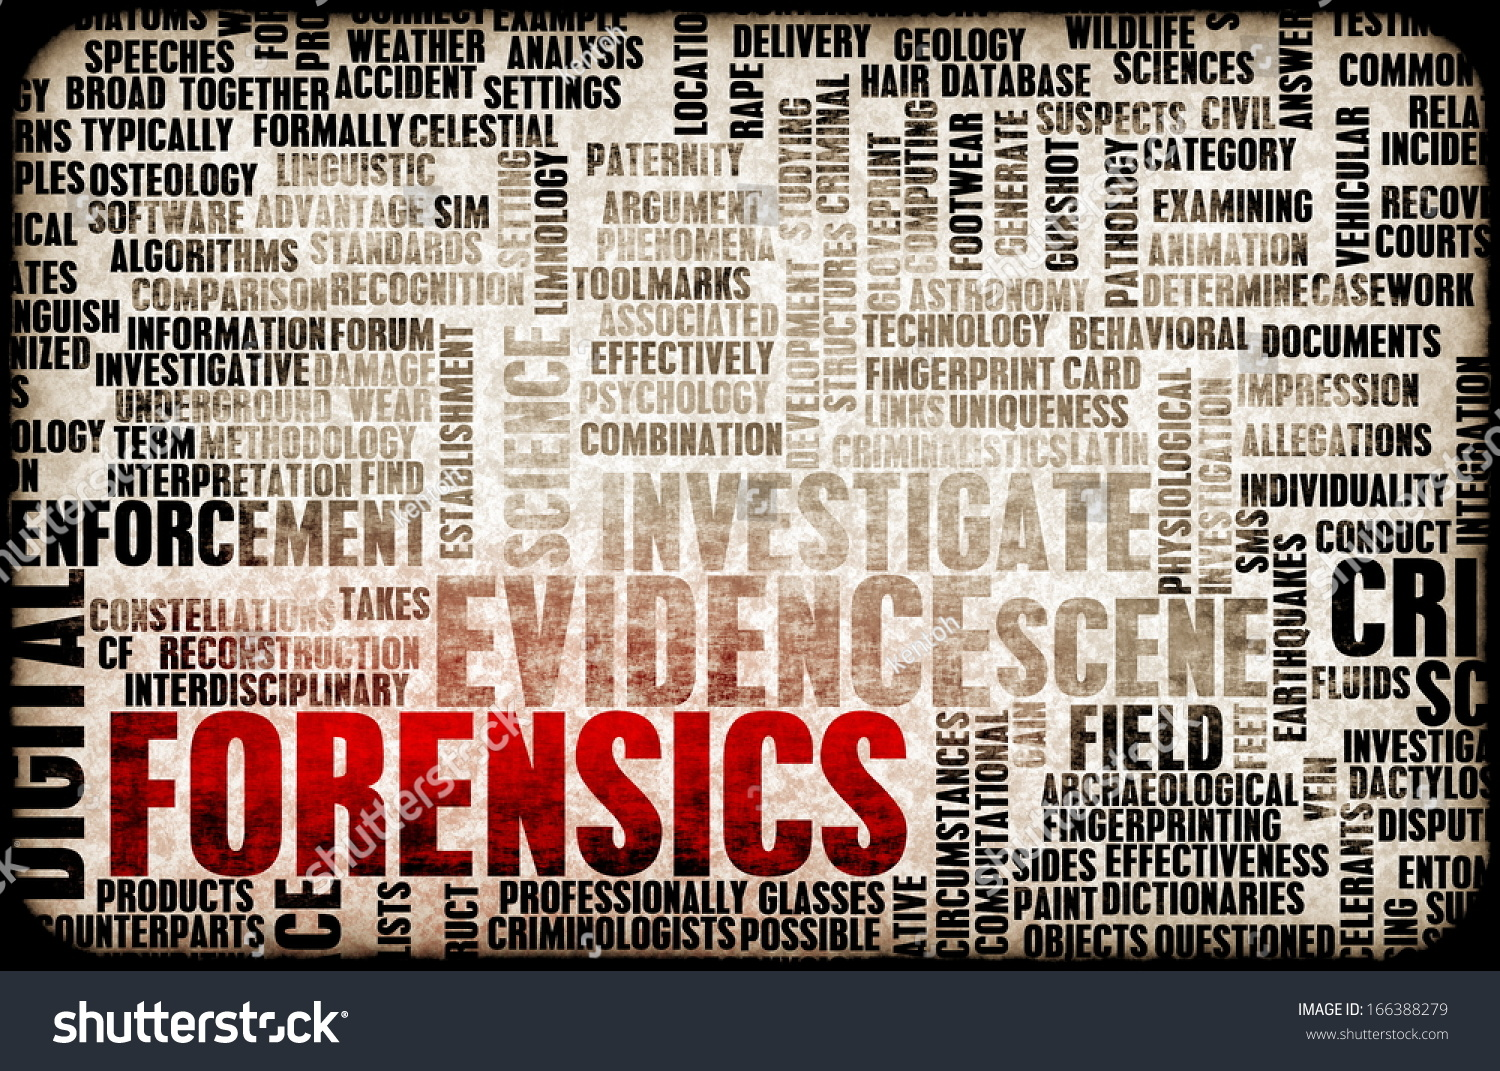 Forensic Science terms for getting high